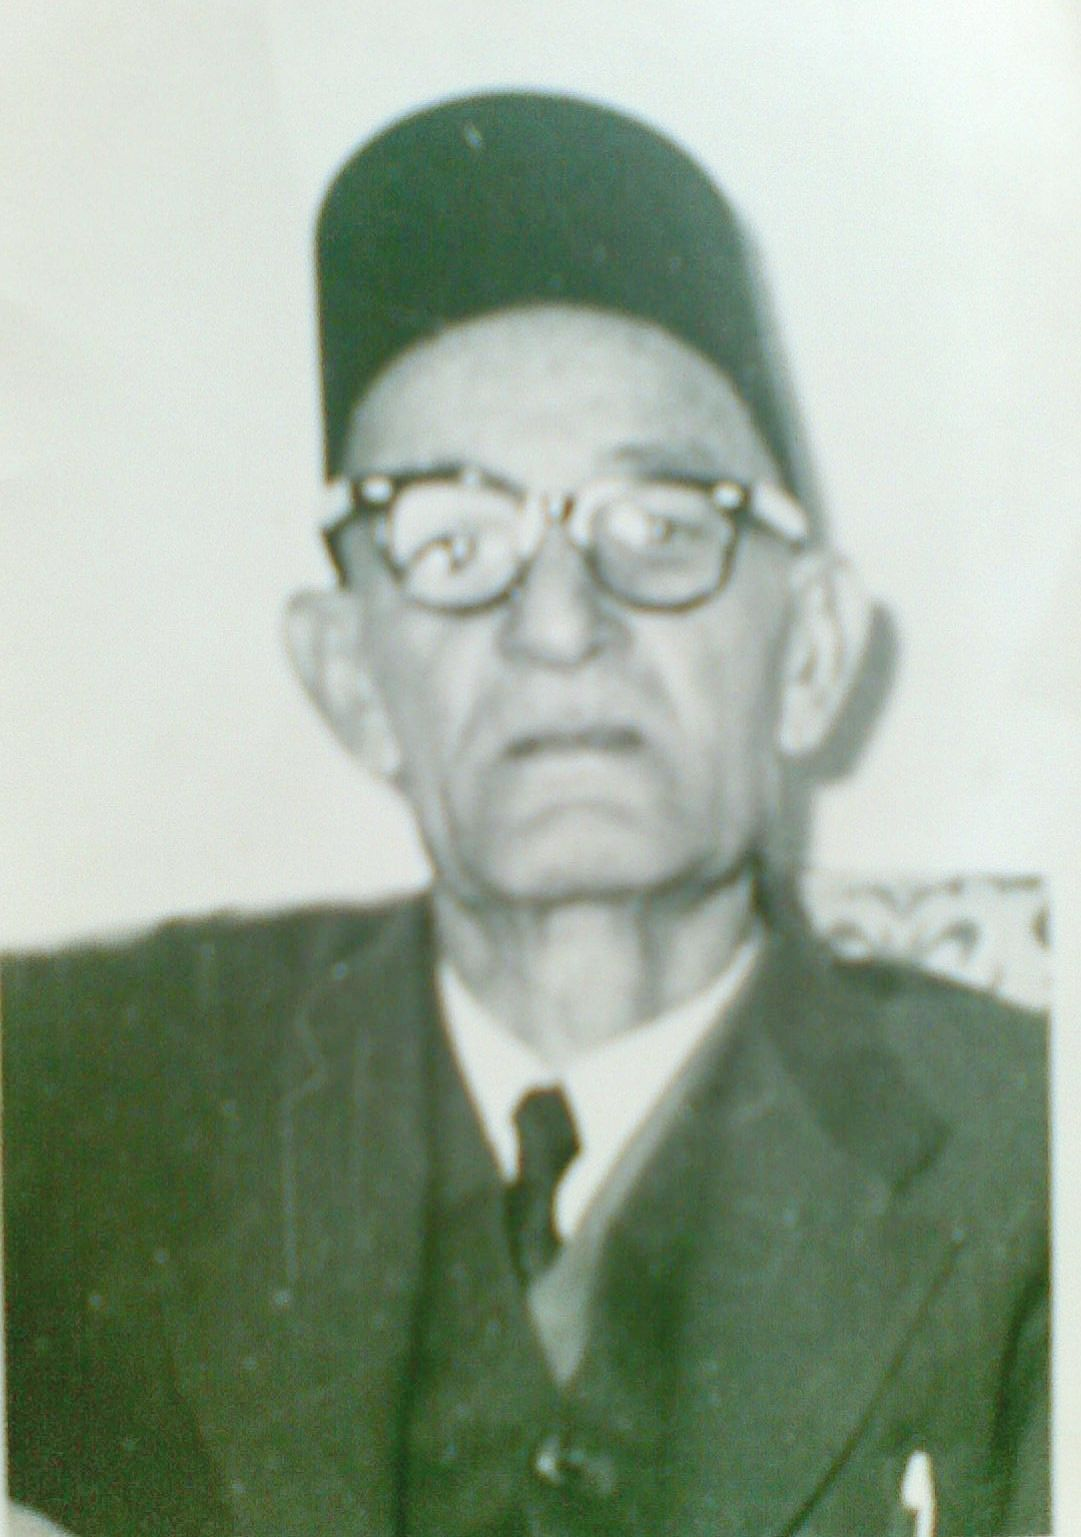 Grandfather Aly Beq Nassef